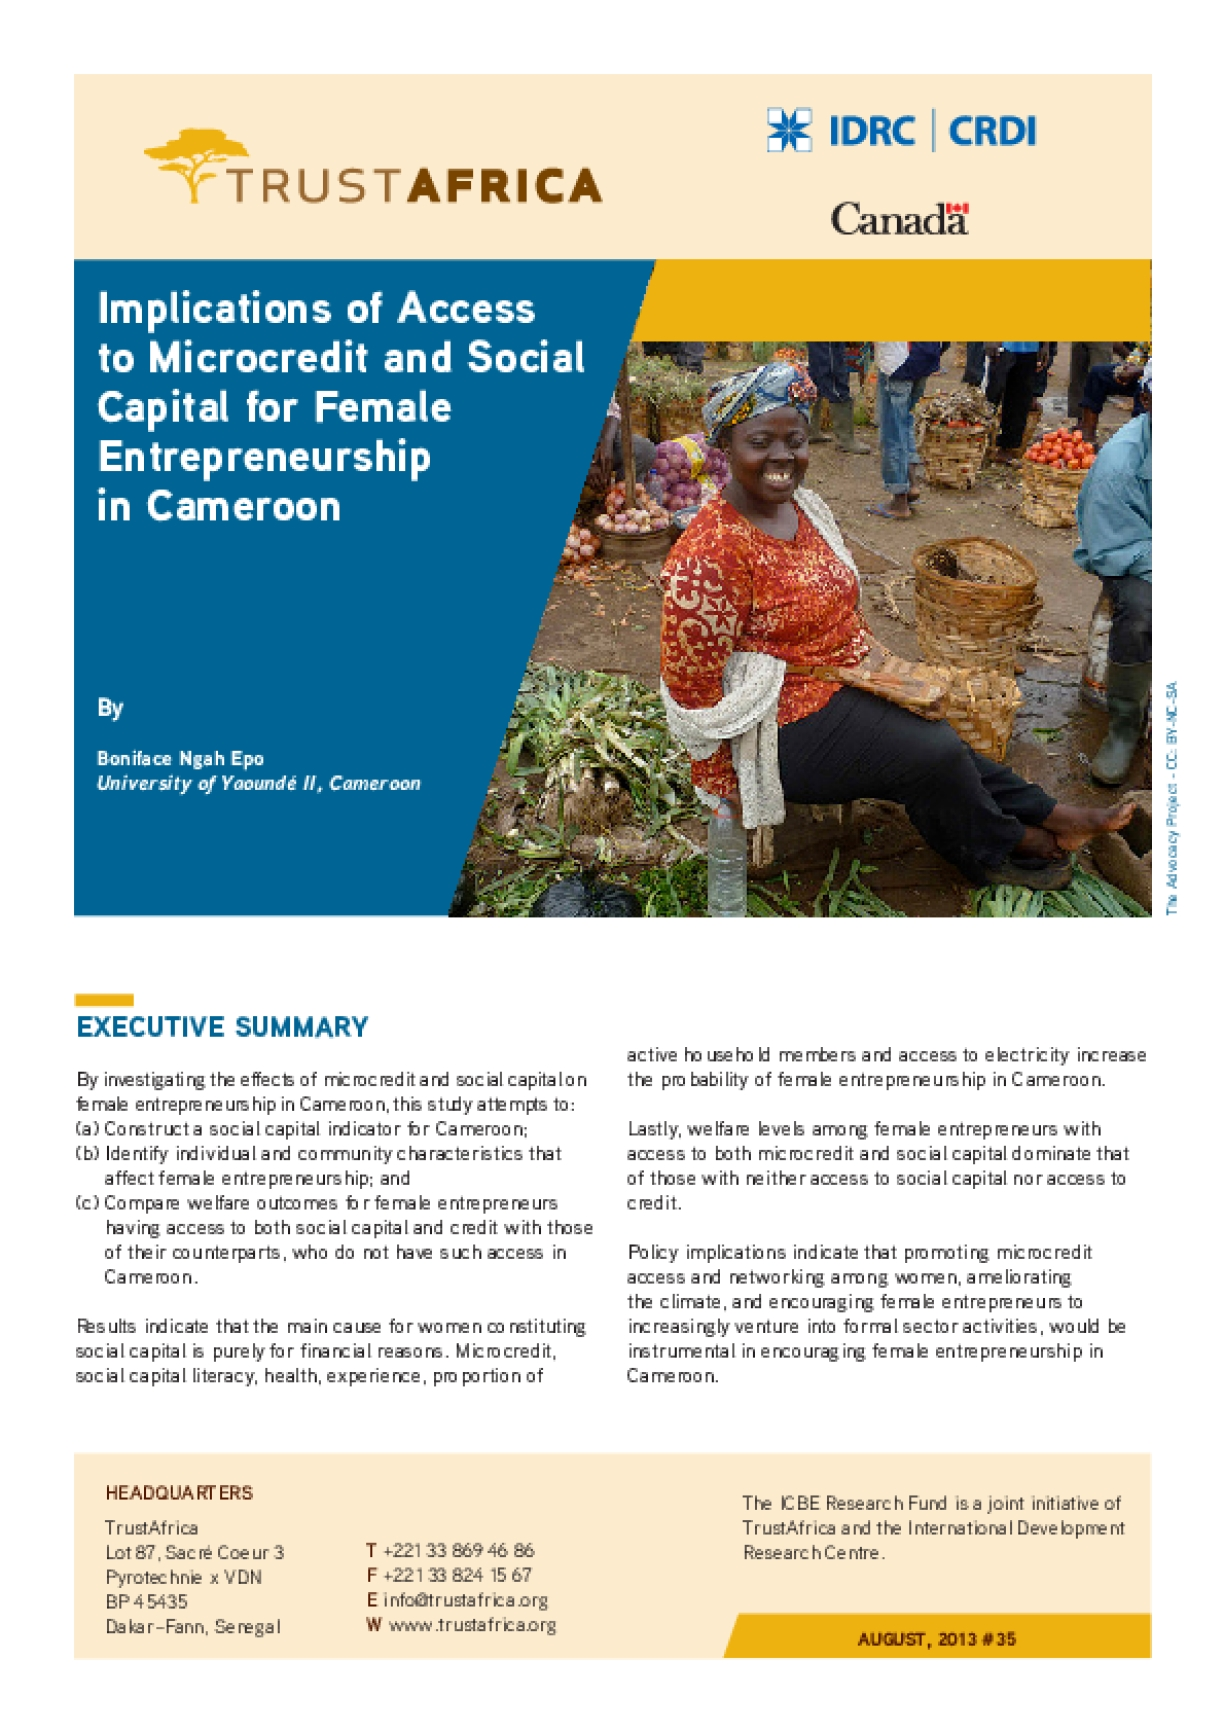 Implications of Access to Microcredit and Social Capital for Female Entrepreneurship in Cameroon